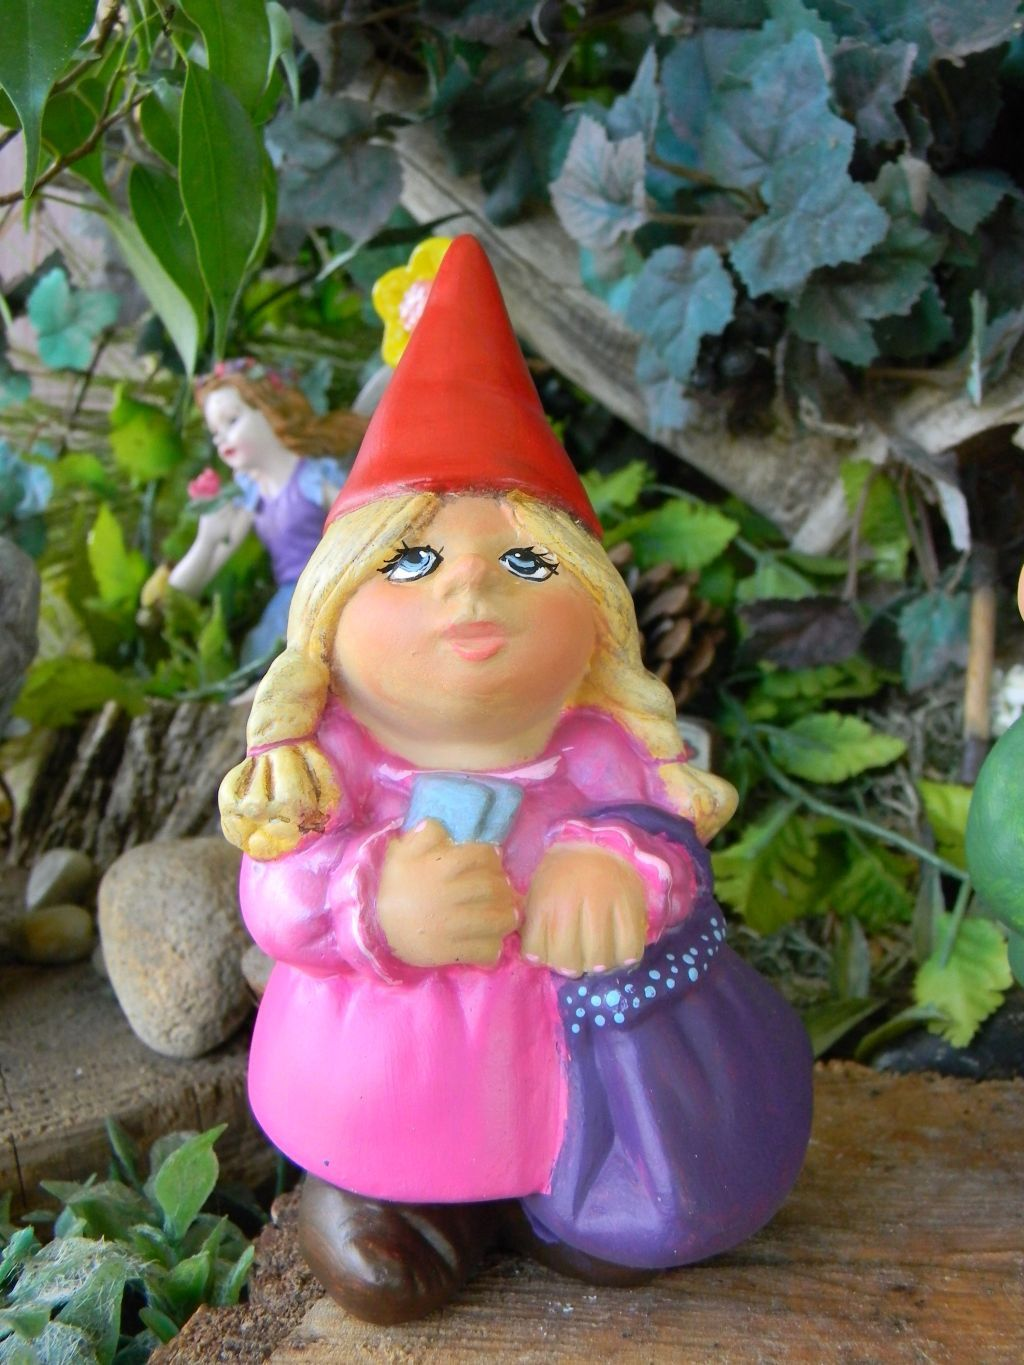 Garden Gnome Lady Female woman traveling Pocket Sized Never Roam